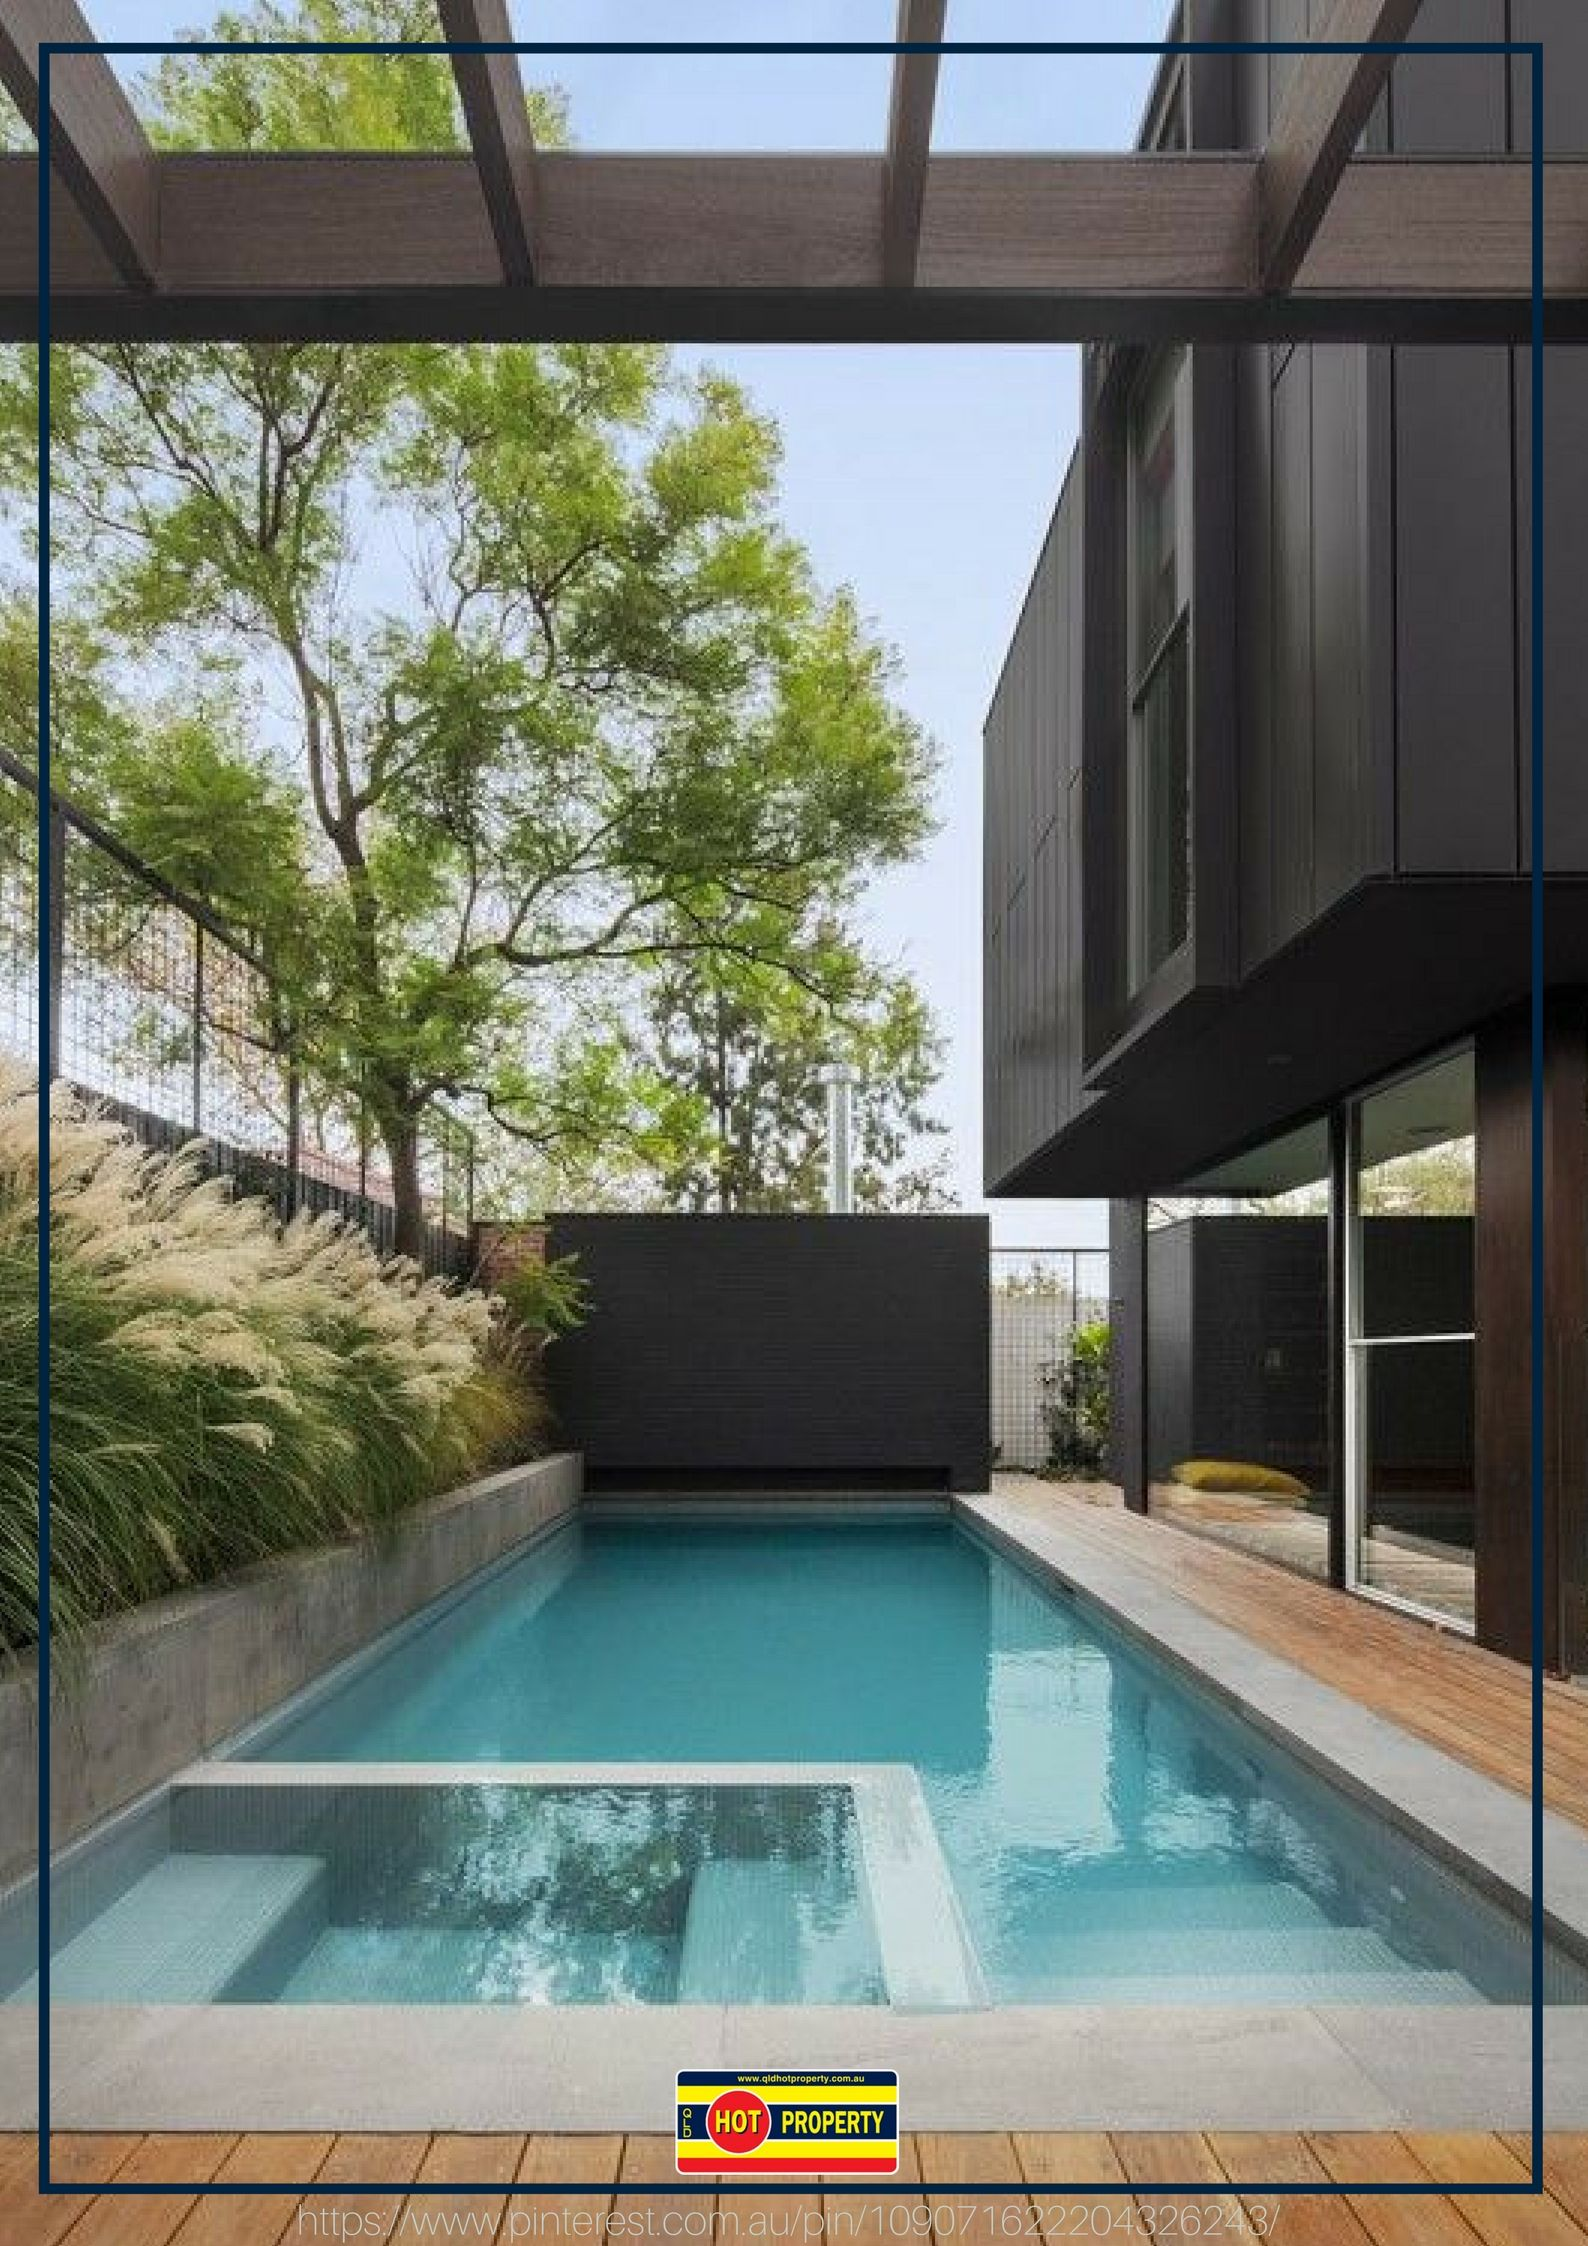 A Luxury Pool With Beautifully Clear Water Modern Pools Pool Landscape Design Pool Houses